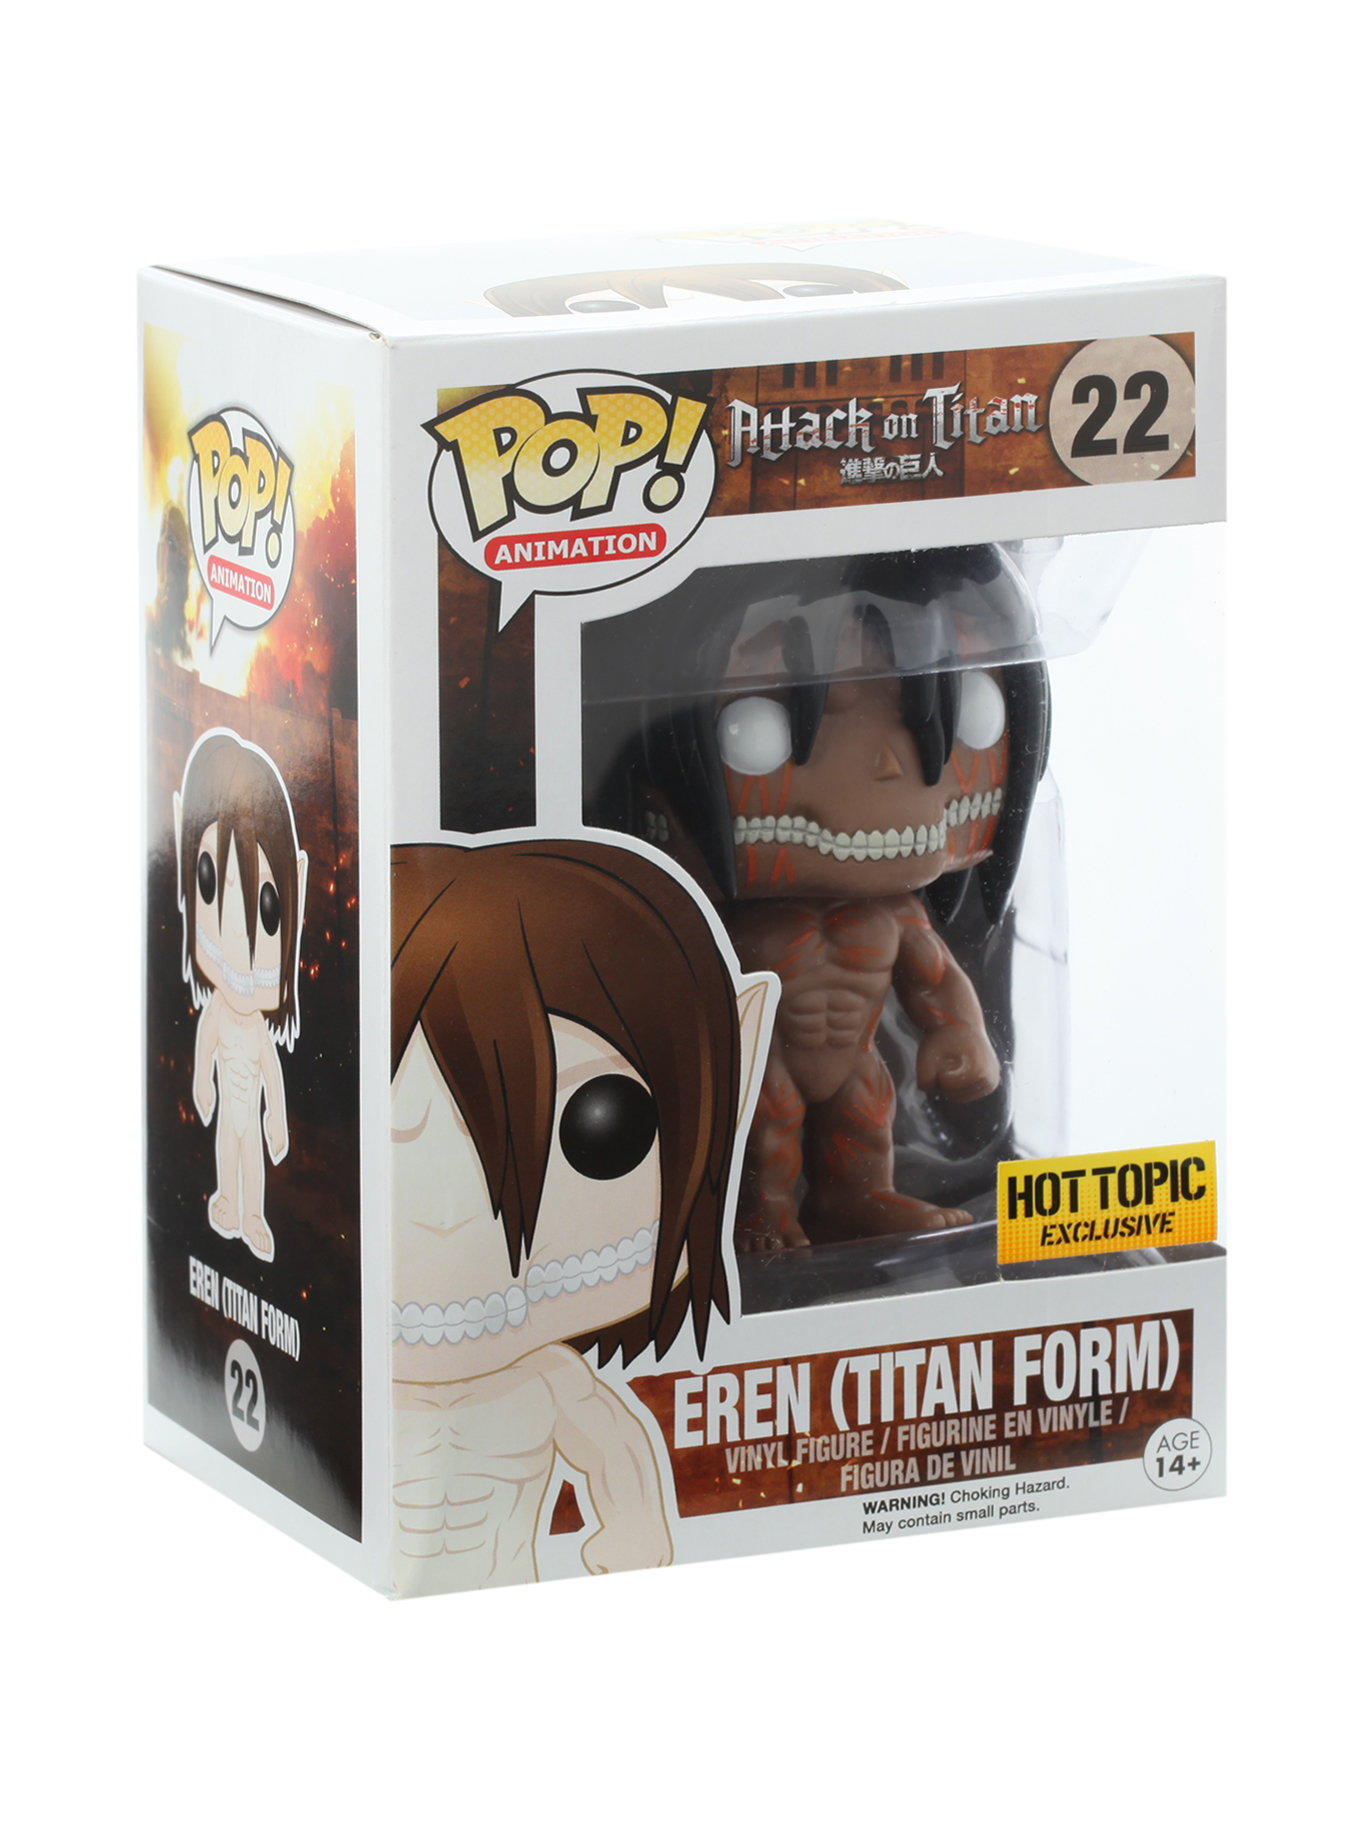 Pop! Animation Attack on Titan Vinyl Figure Eren (Titan Form) #22 Hot Topic Exclusive